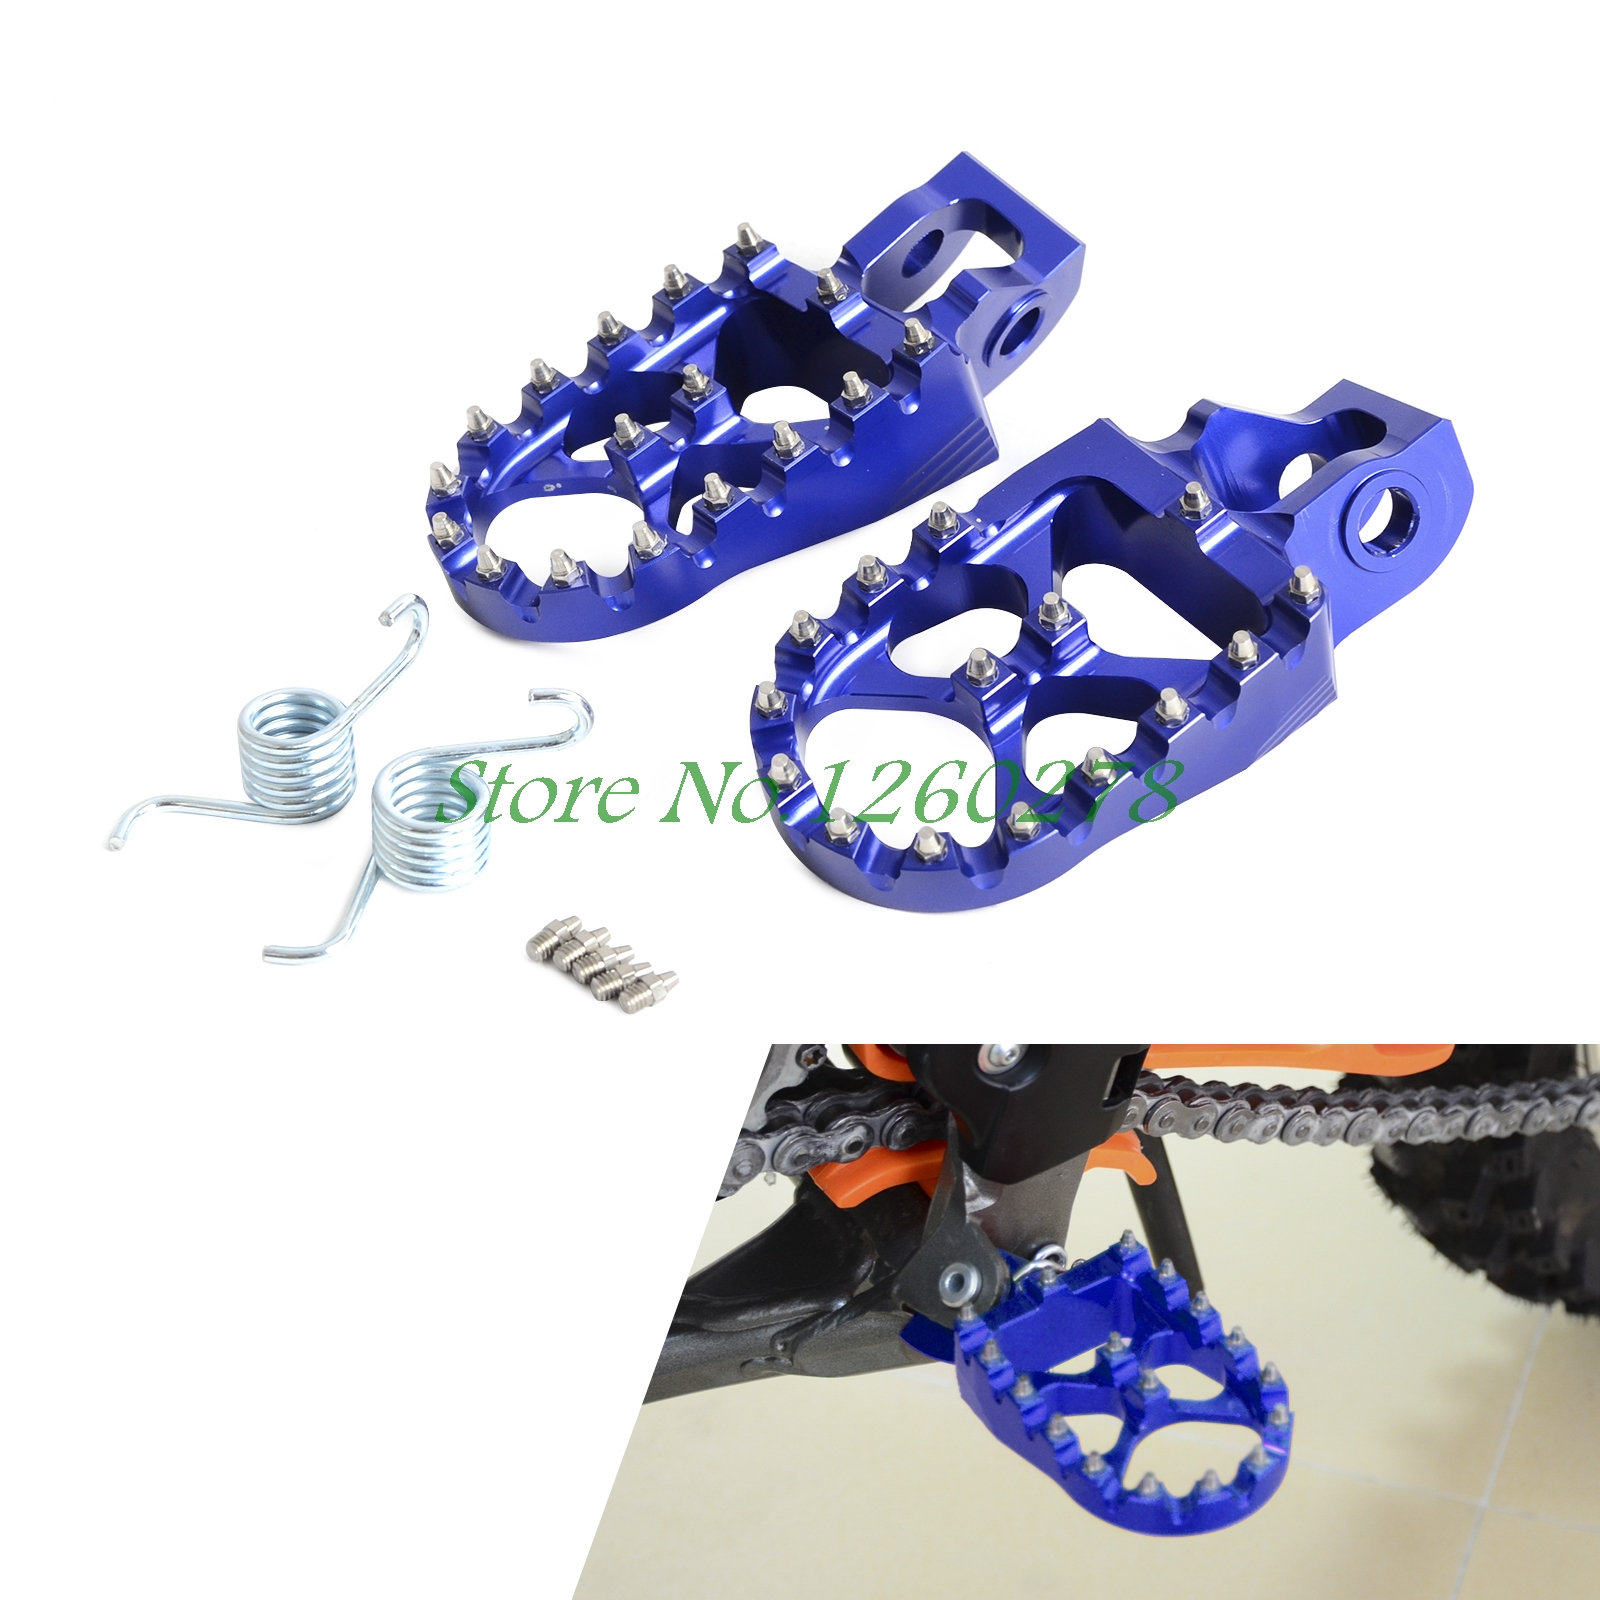 Motorcycle 57mm Billet Wide Foot Pegs Footrests For Husqvarna TC TE FC FE FS TX FX